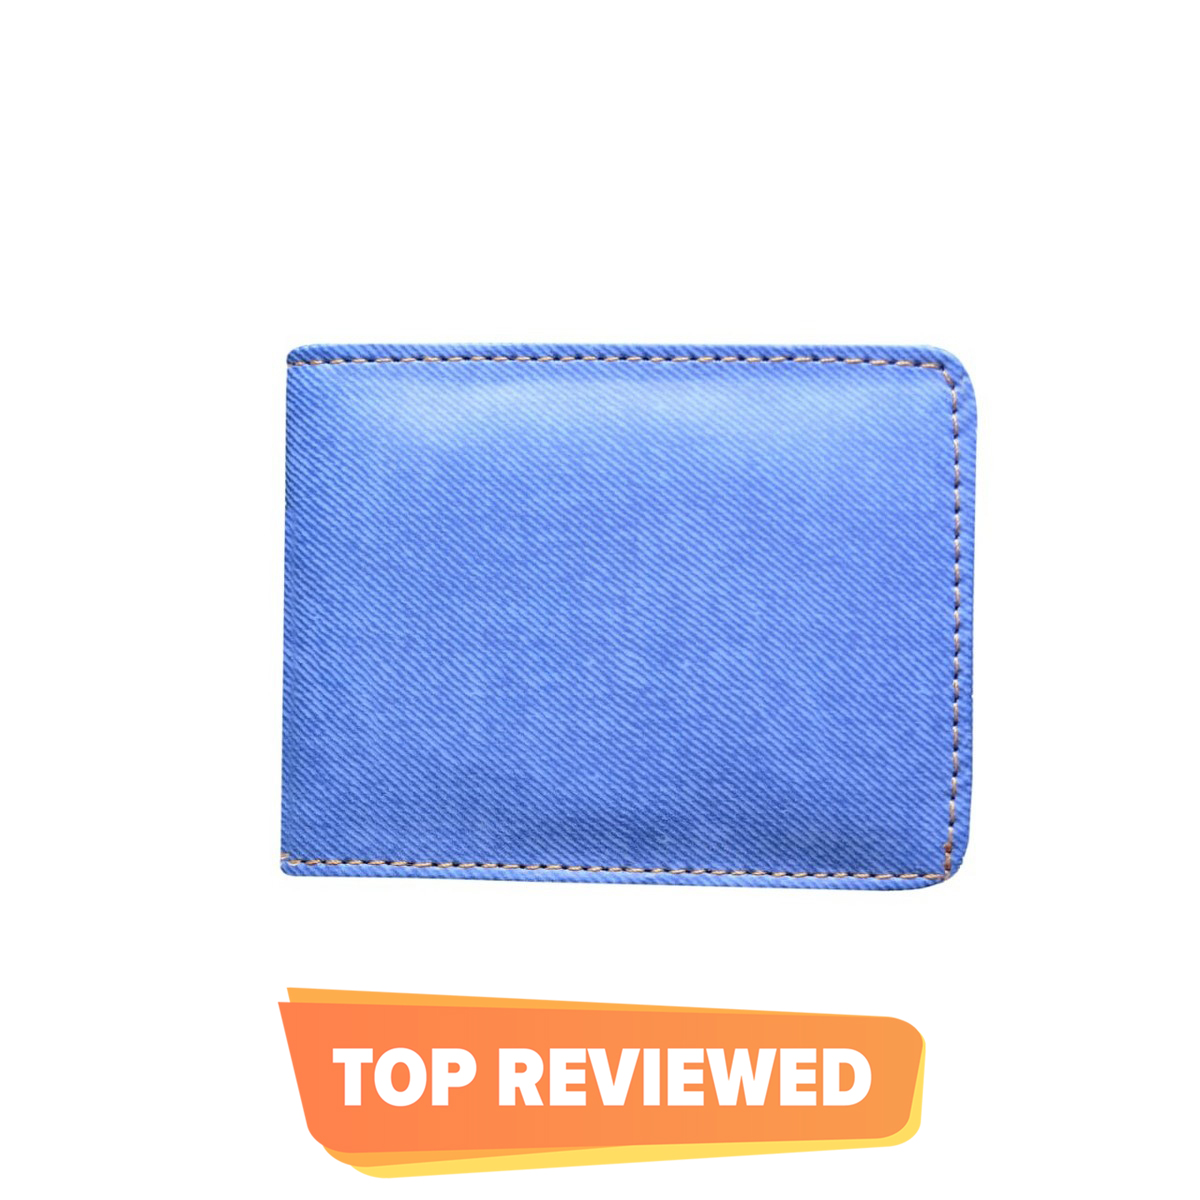 Slim wallet mini small wallet for boys, men stylish small wallet card holder for Students